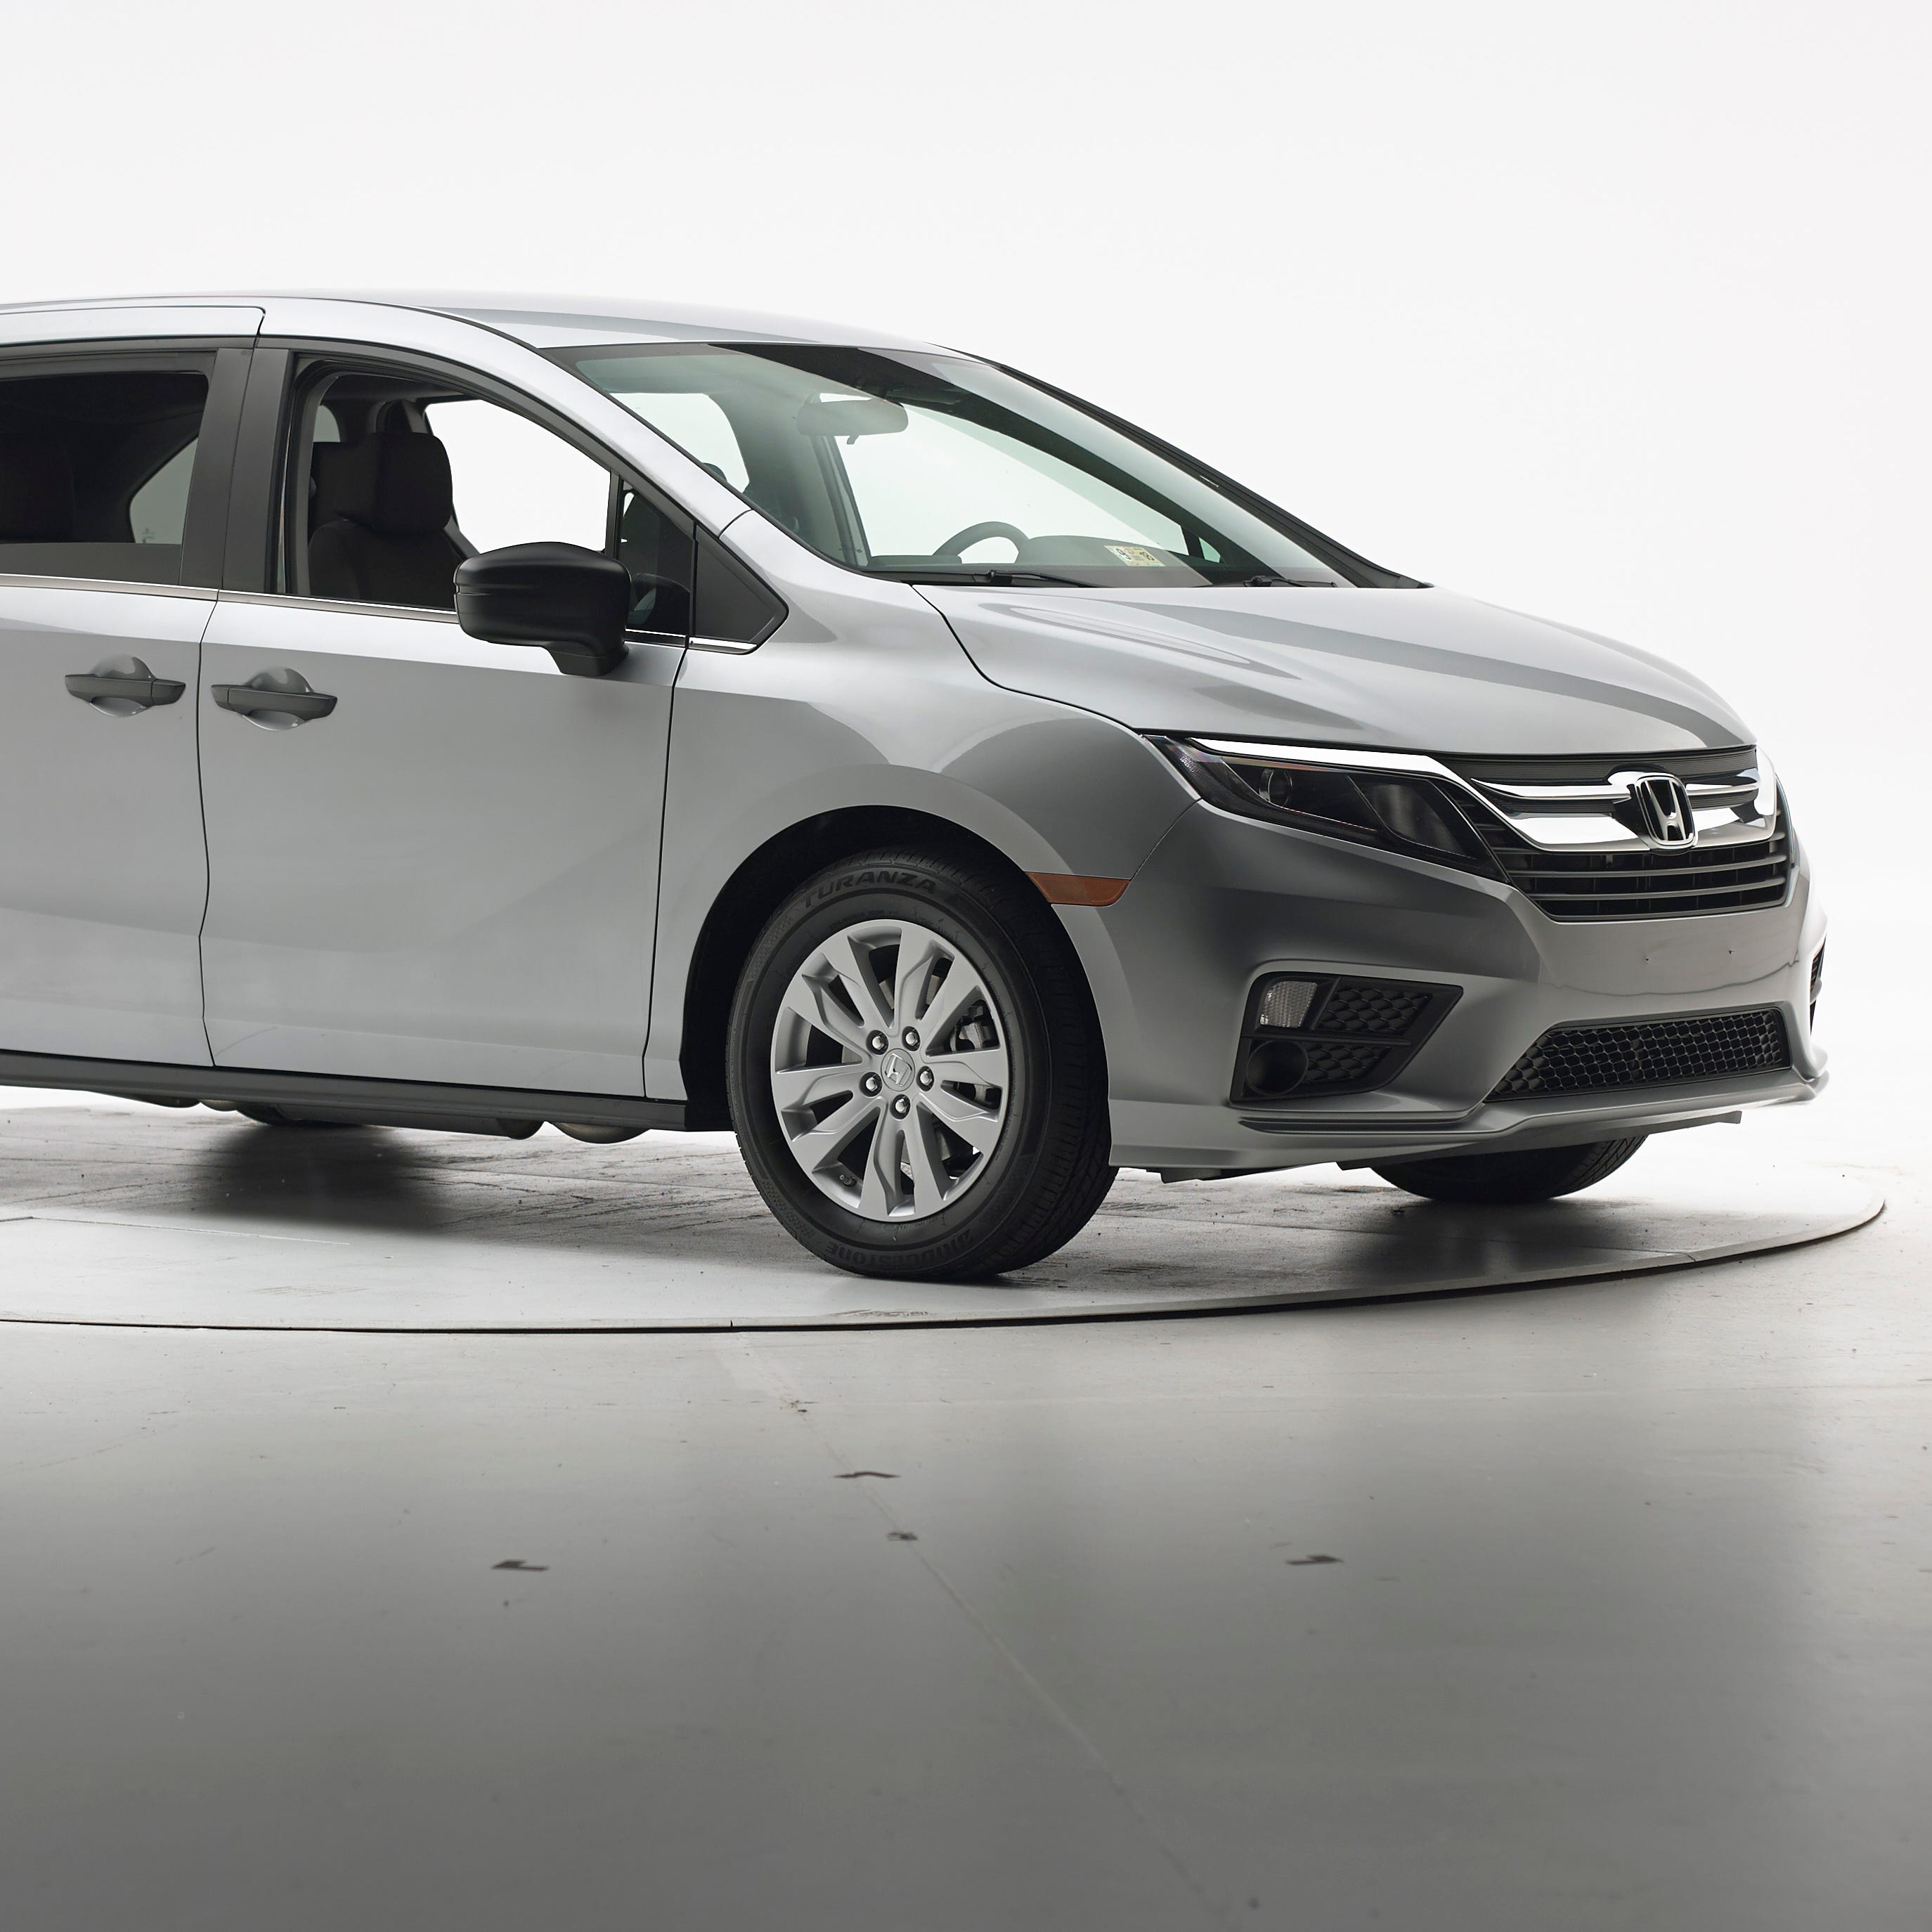 Honda Odyssey tops minivans in new crash test